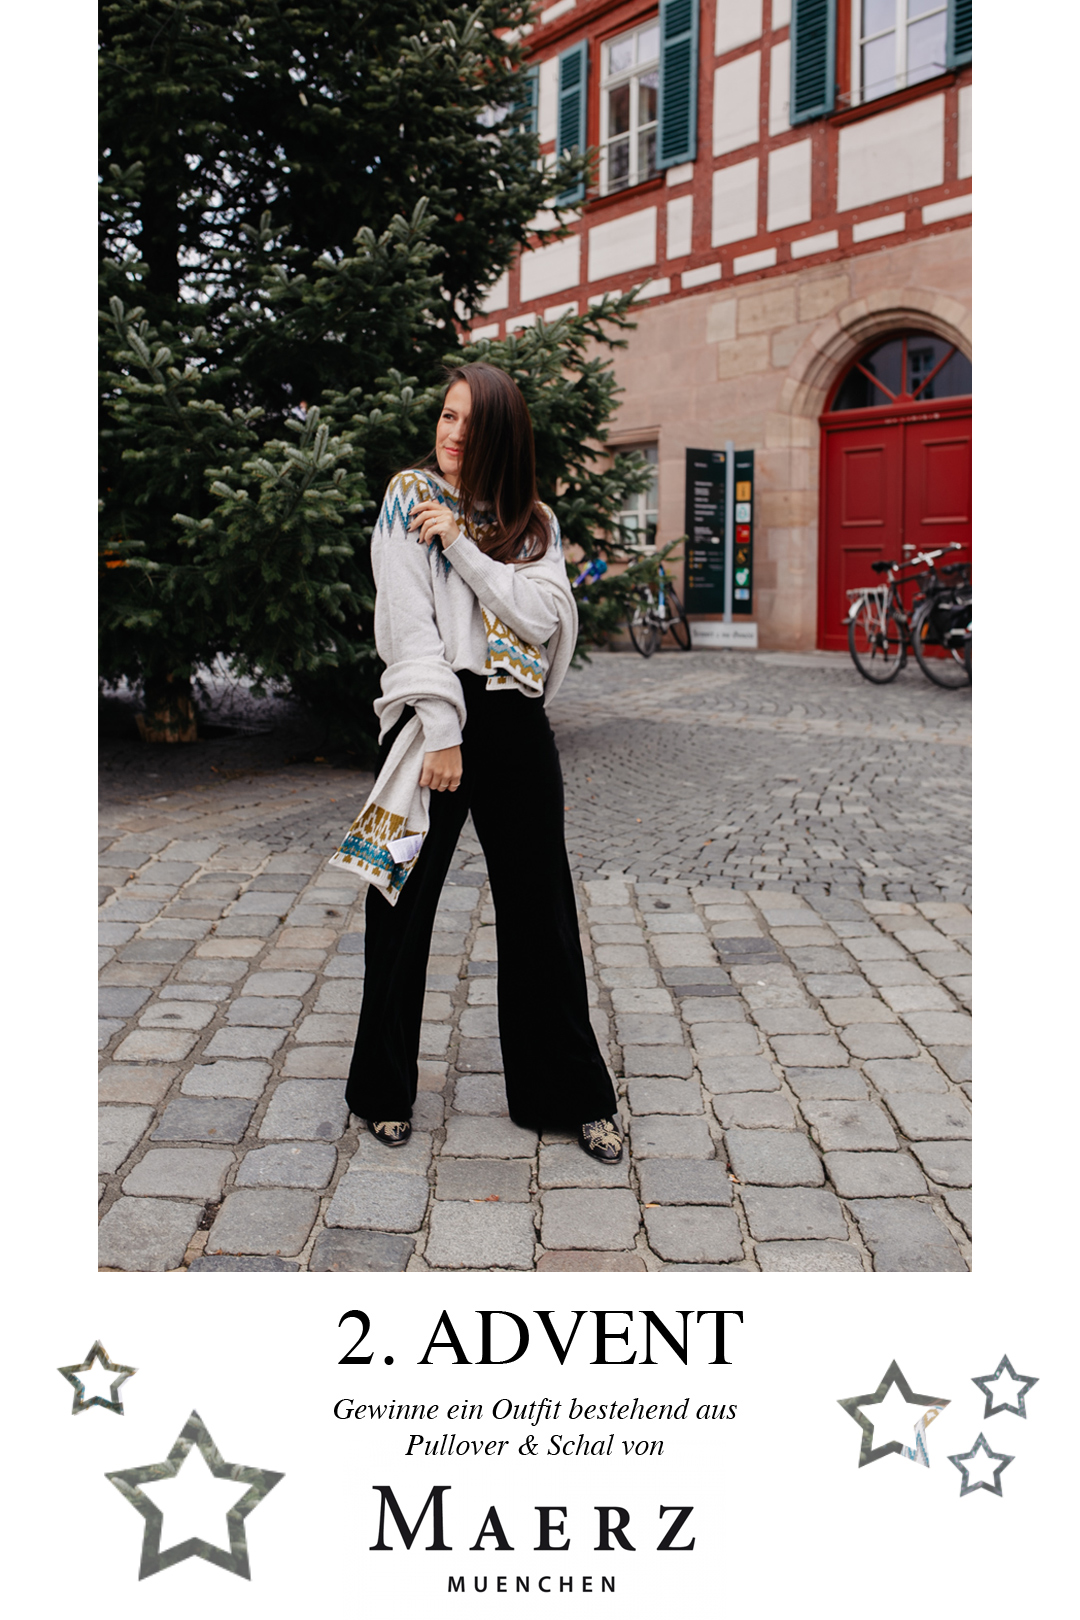 2. Advent mit MAERZ Muenchen - Pieces of Mariposa // Fashion & Lifestyle Blog Nürnberg